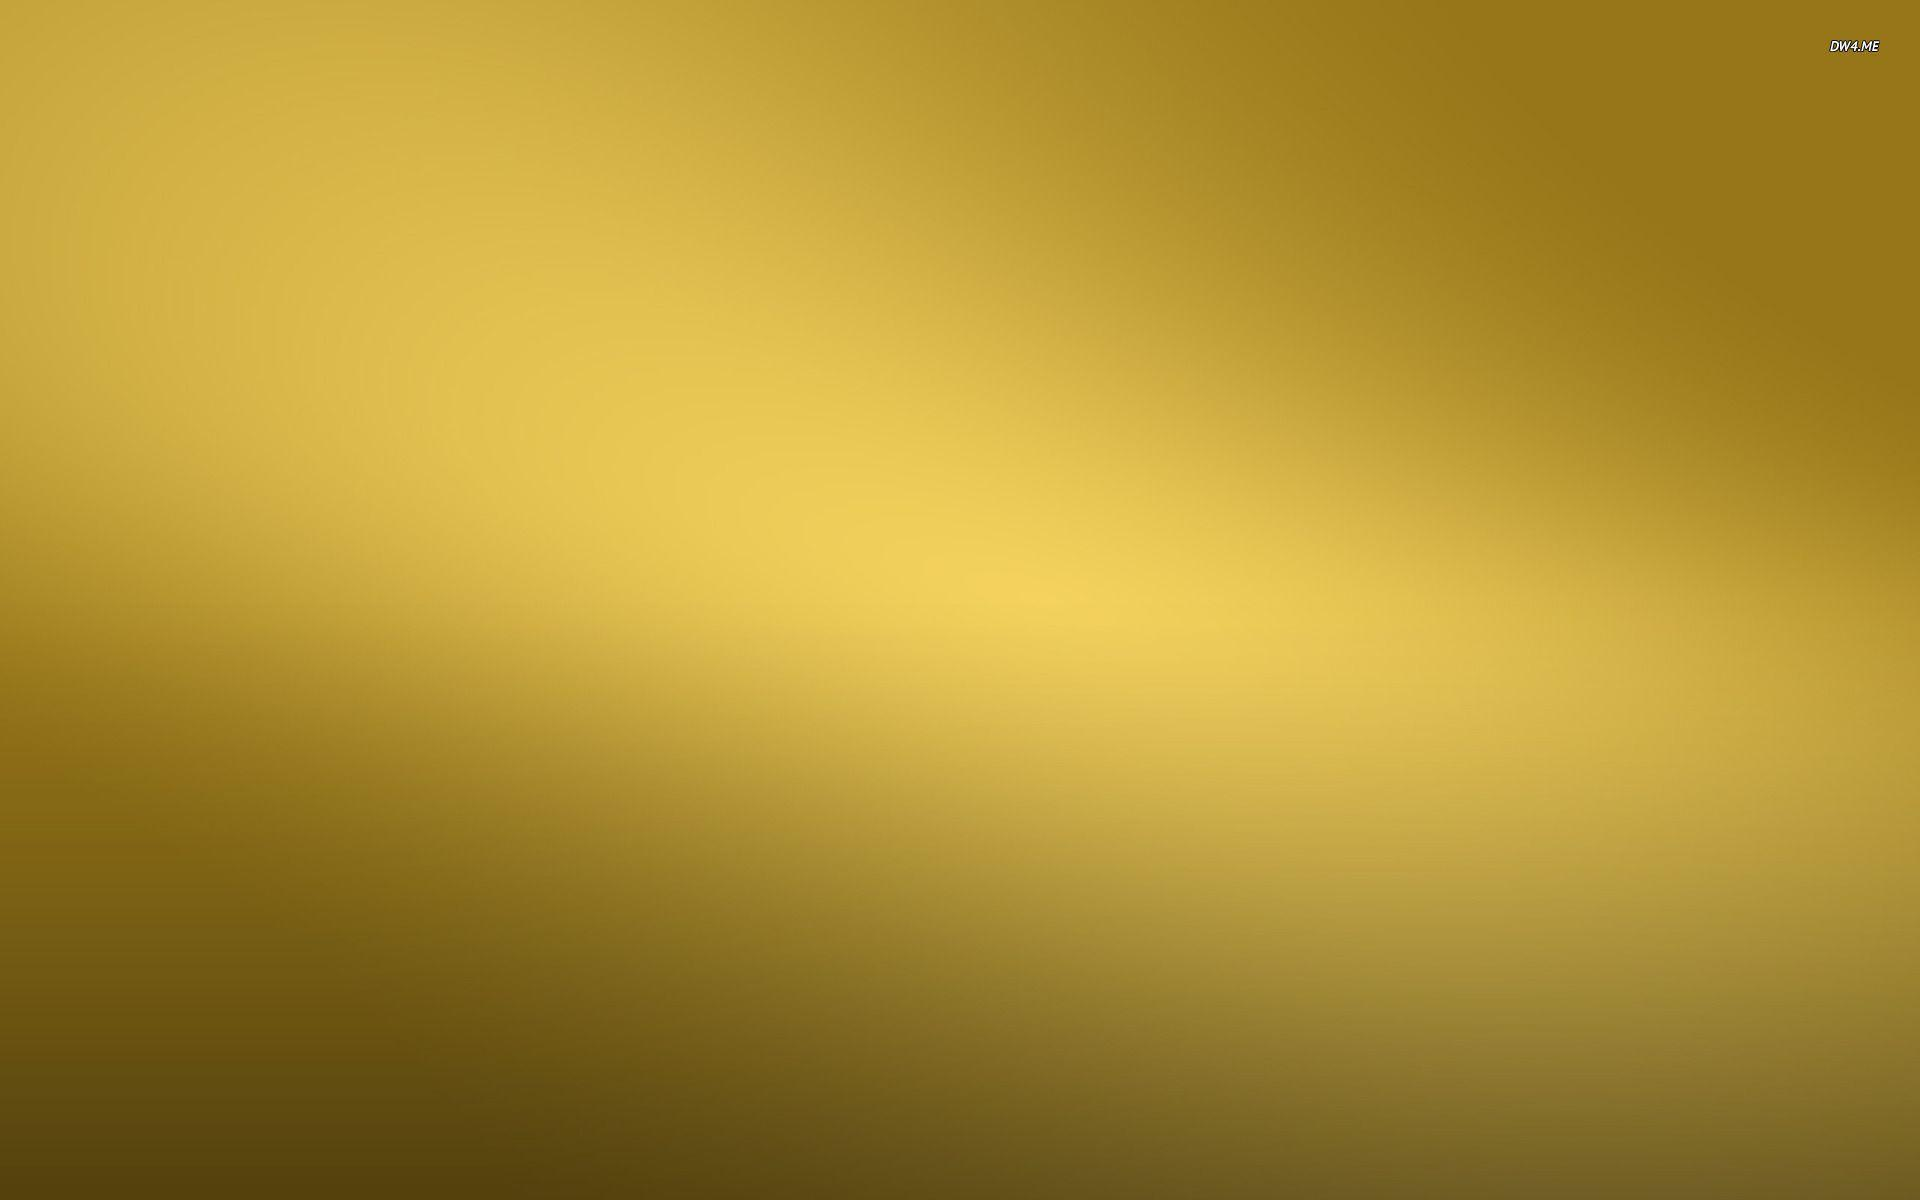 Gold Backgrounds Image 1920x1200